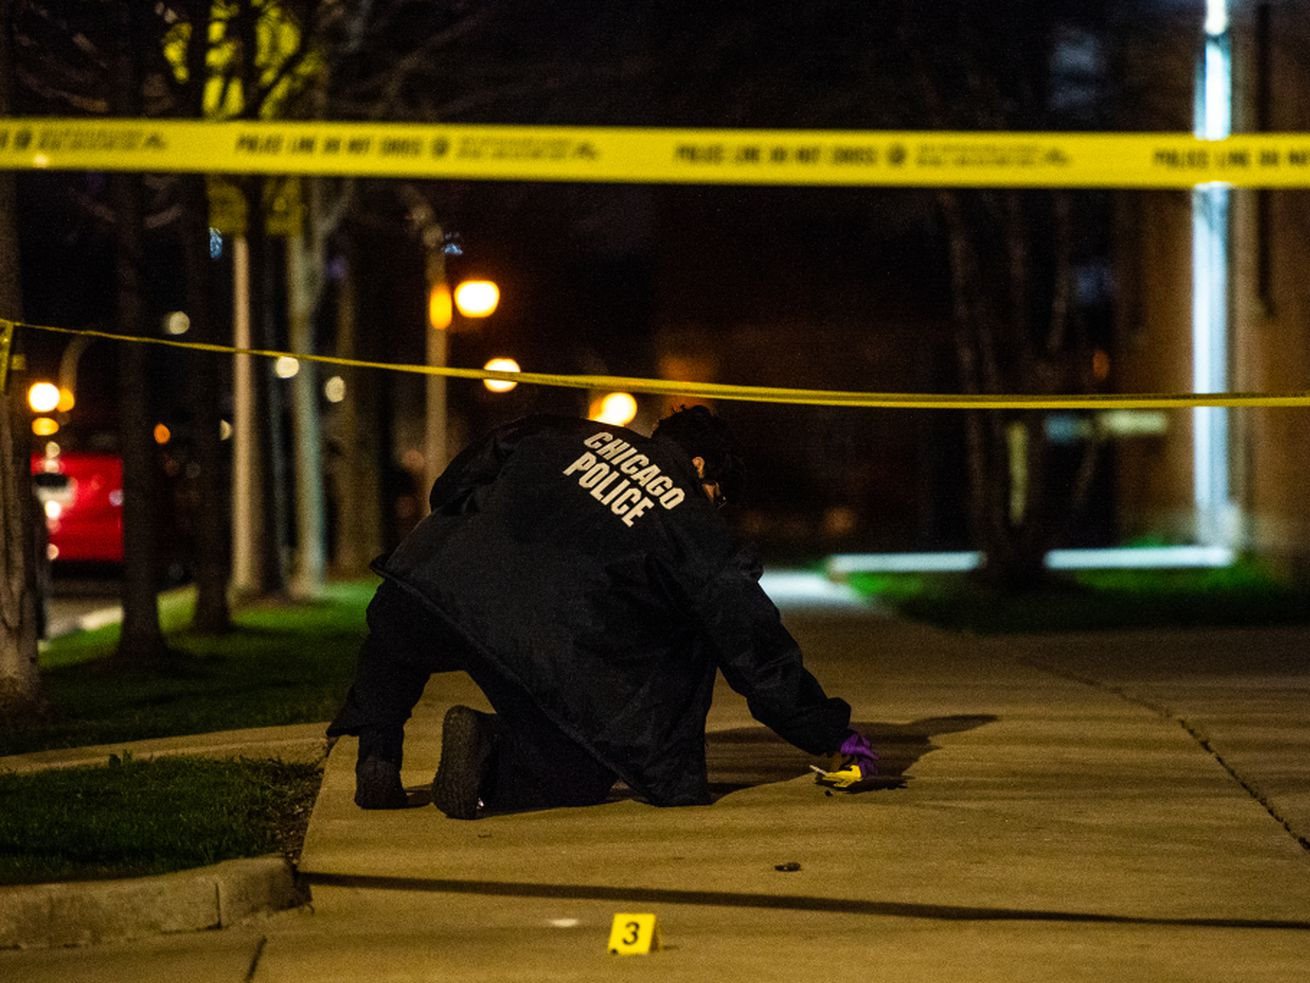 Five people have been killed and 18 others have been injured in gun violence across Chicago over the weekend from Oct. 16-19, 2020.